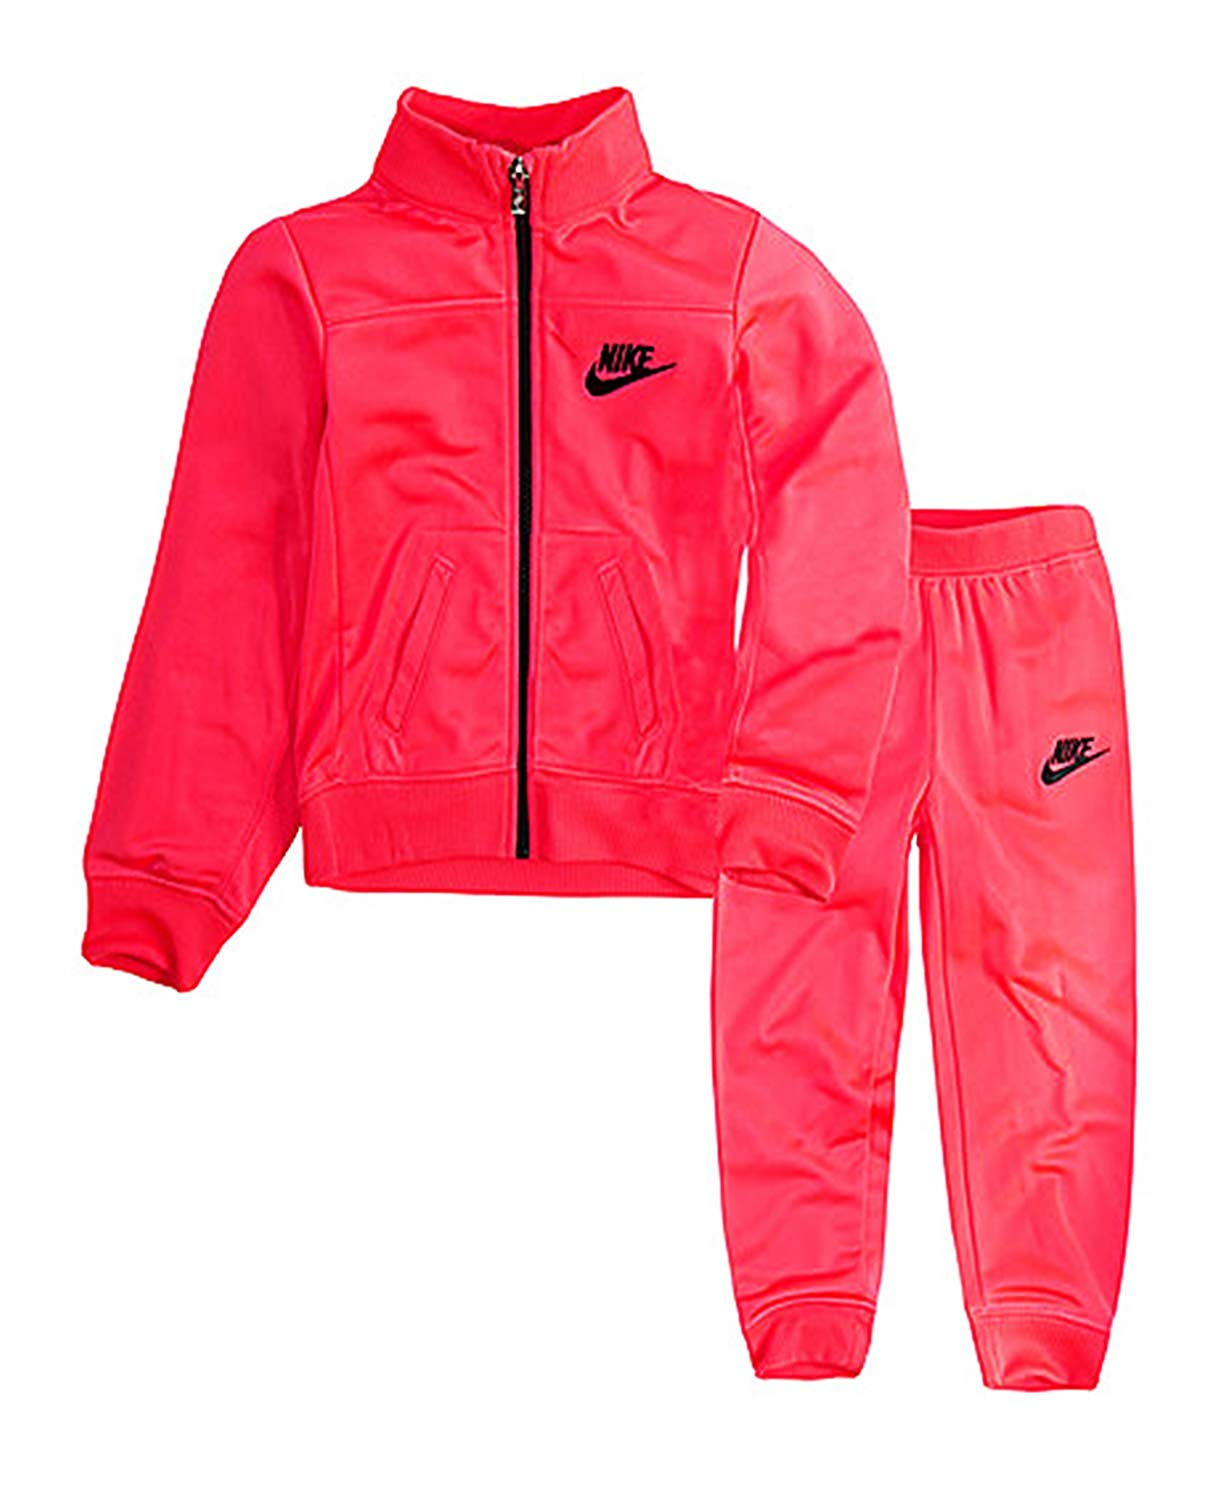 Girls Nike 2 pc Long Pant & Top Set Baby Clothes, Baby